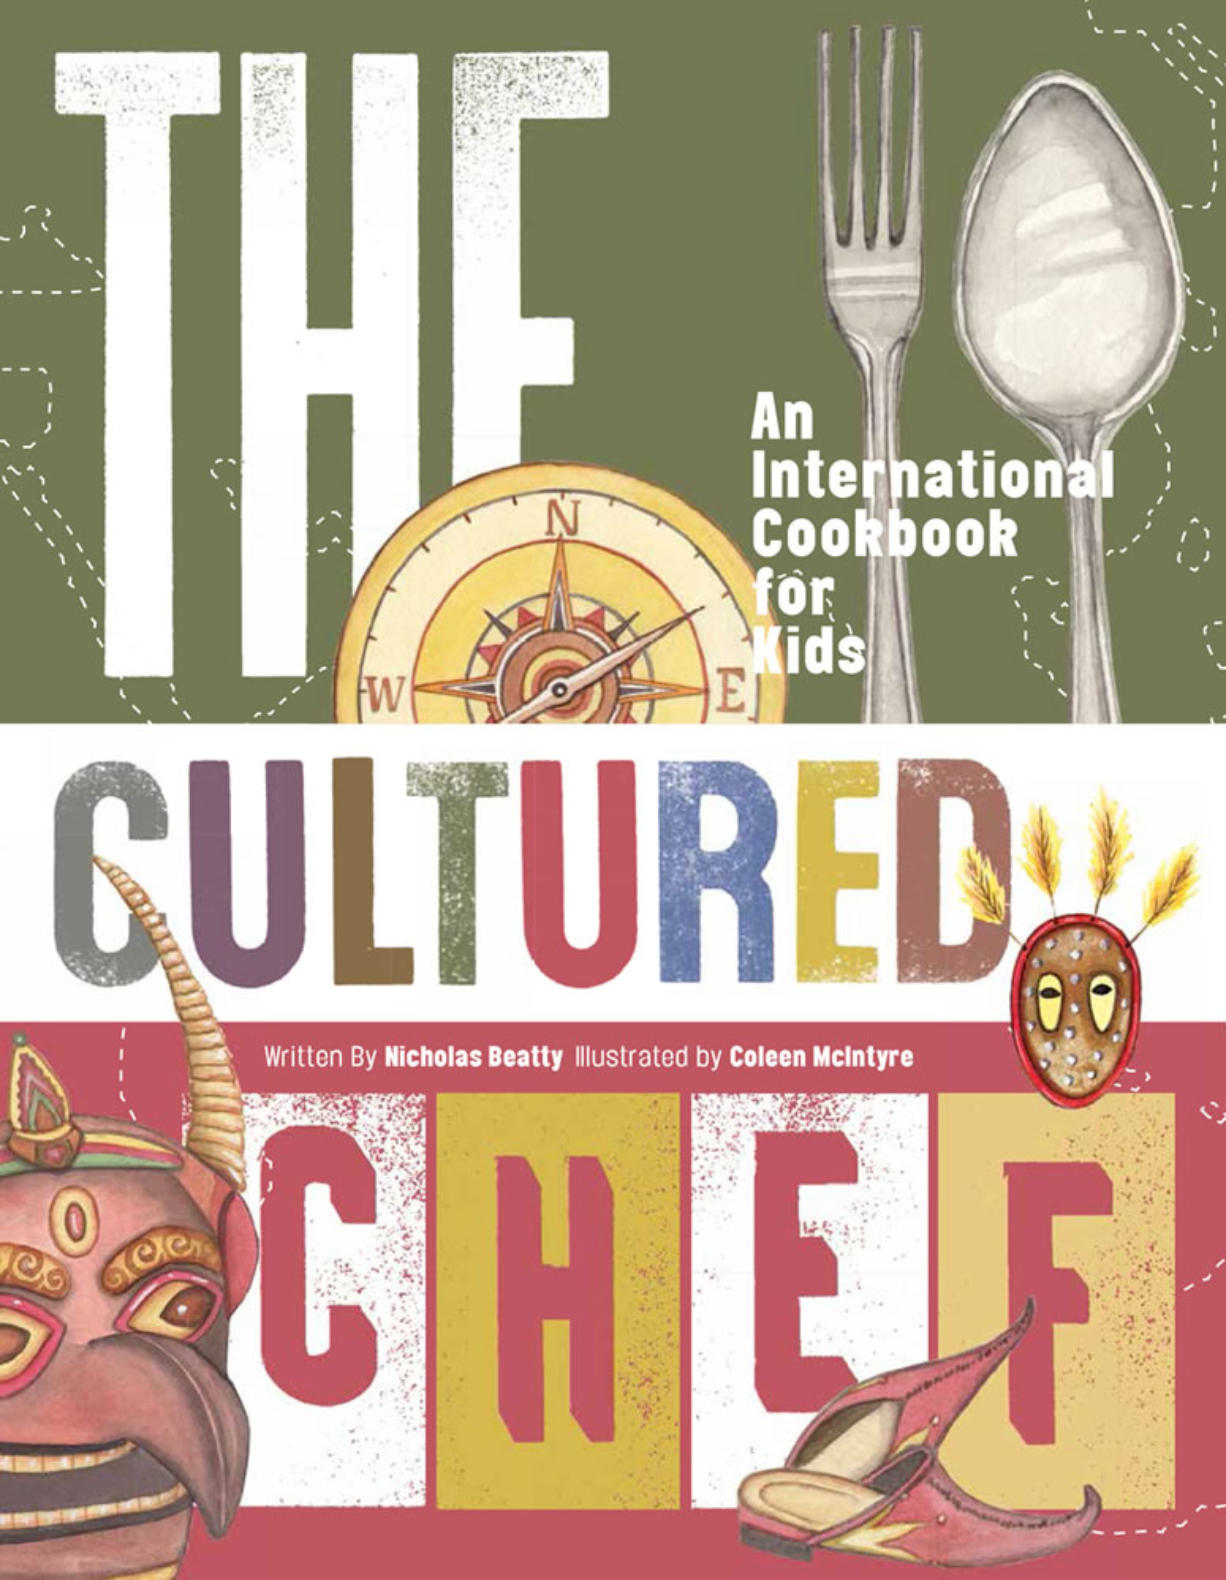 """The Cultured Chef"" by Nicholas Beatty and Coleen McIntyre."